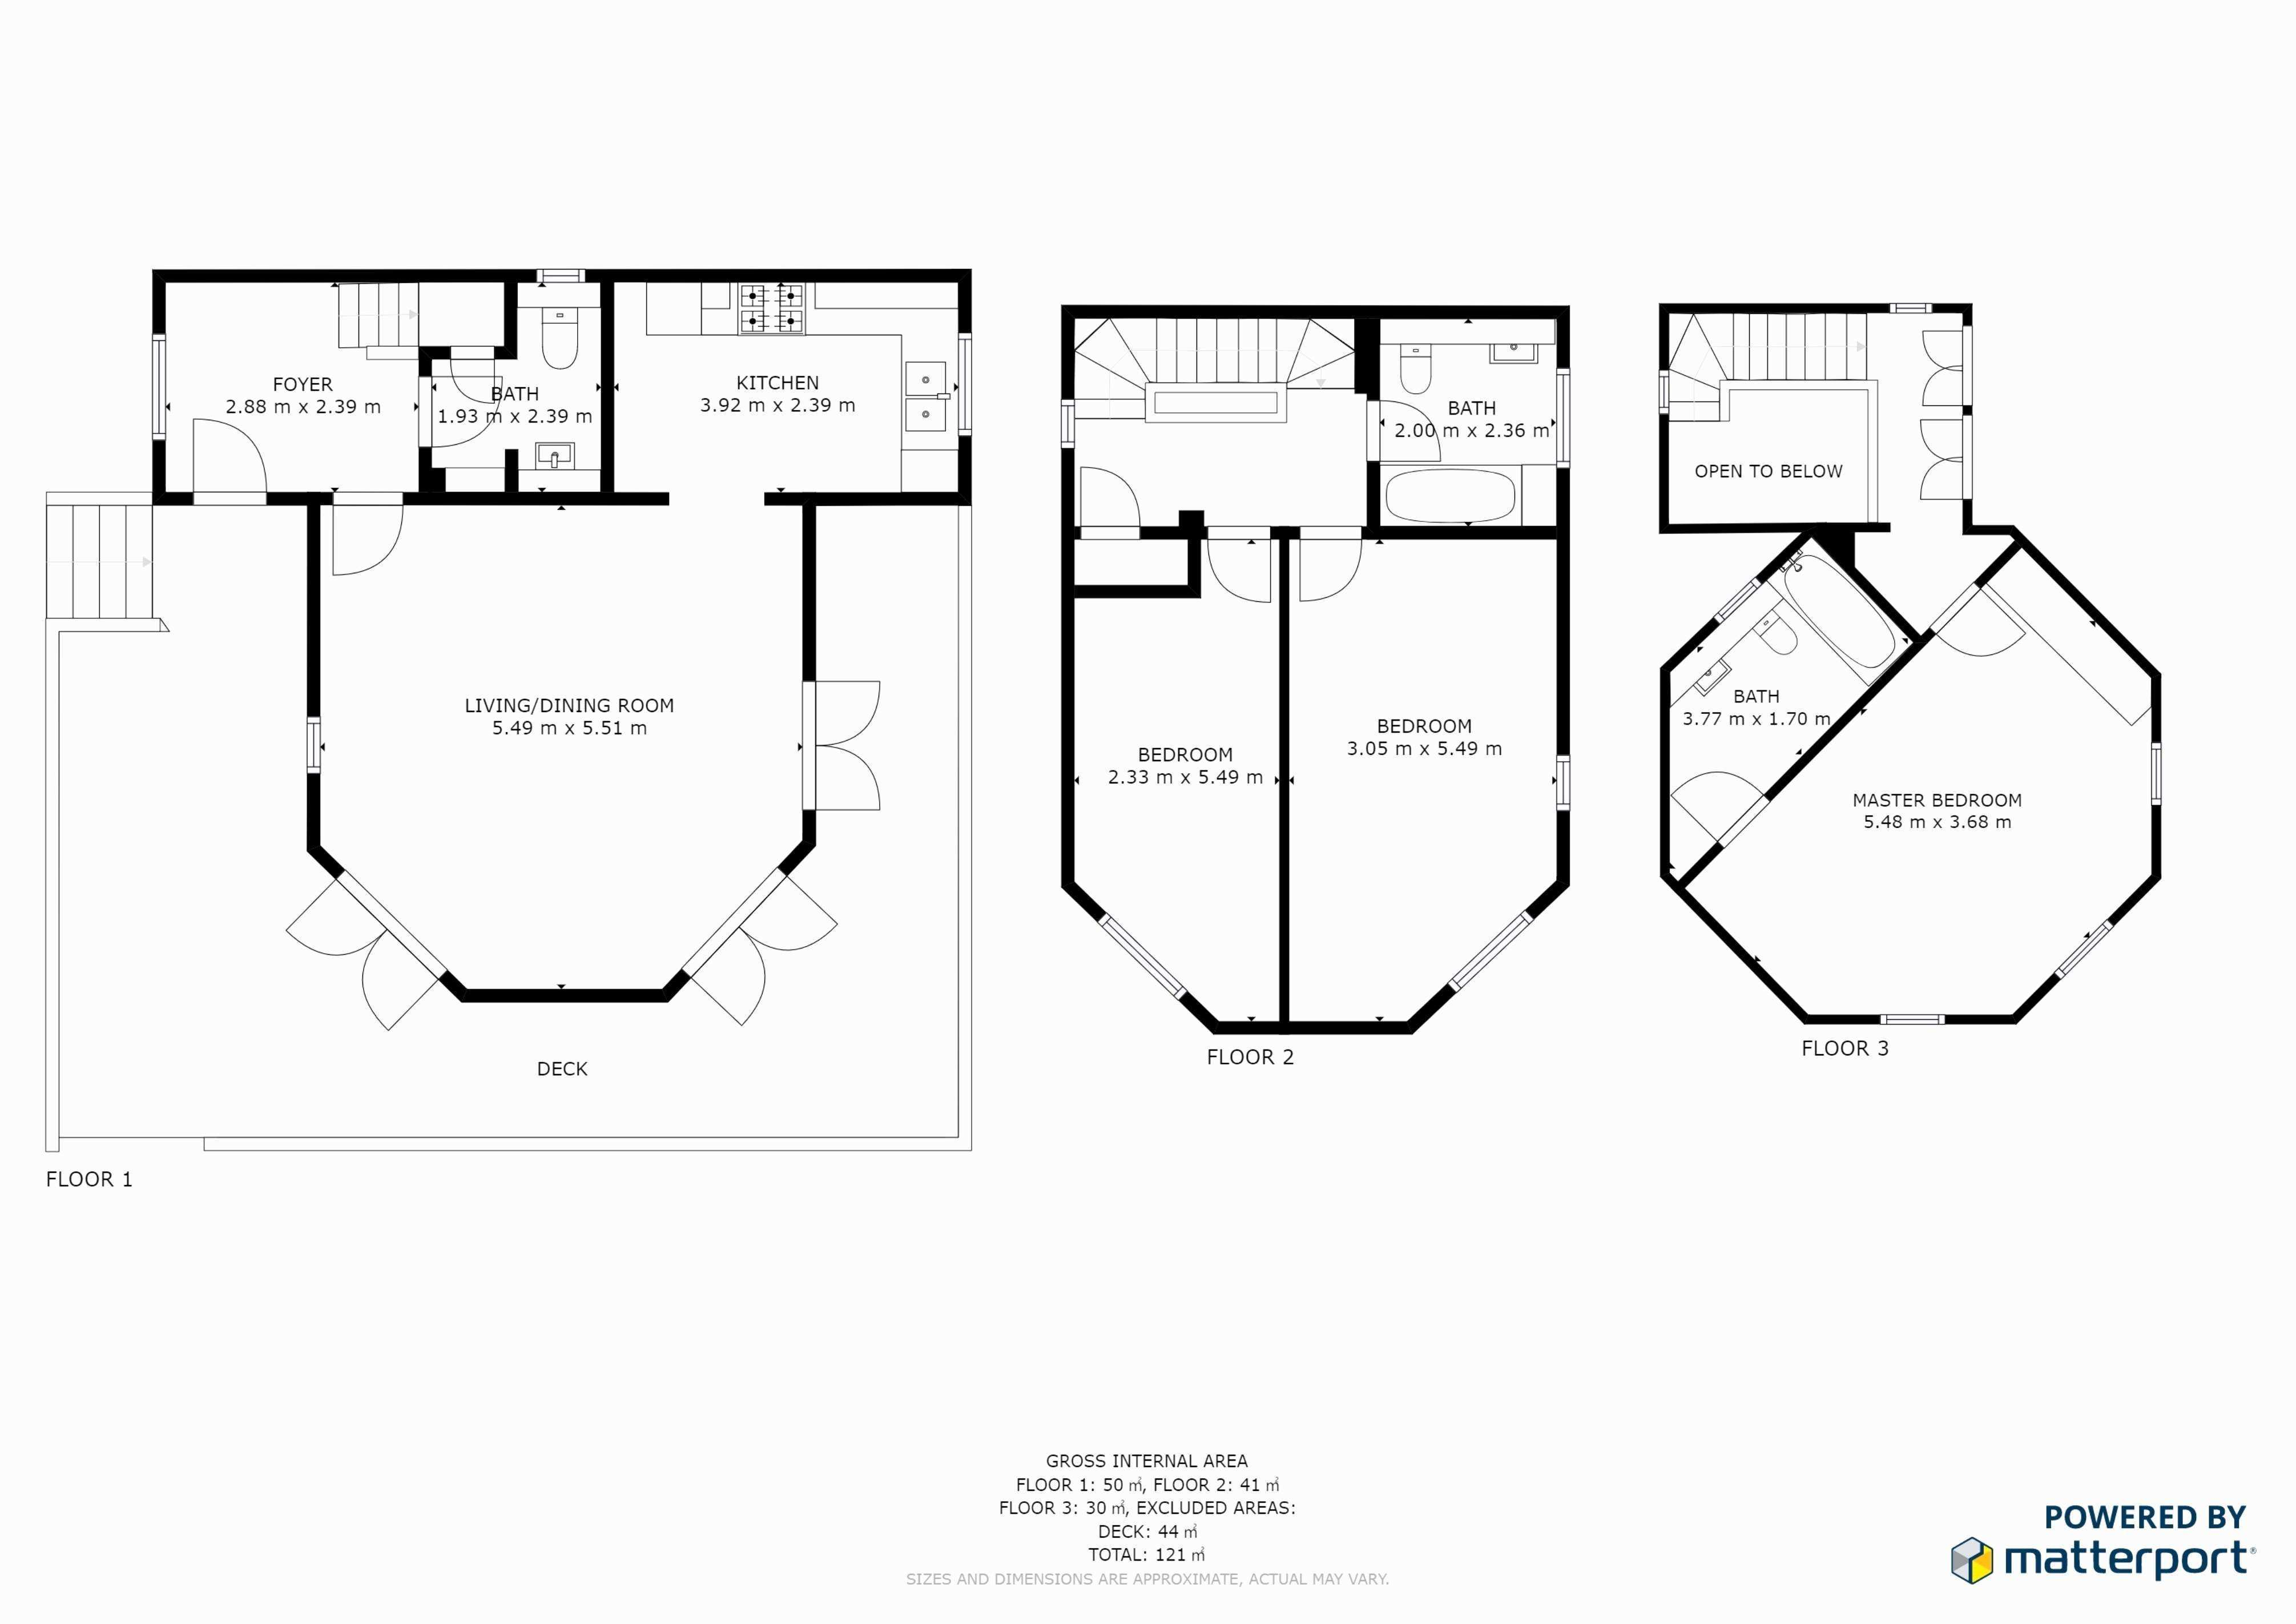 Butterfly House Plans New Wall Decal Luxury 1 Kirkland Wall Decor